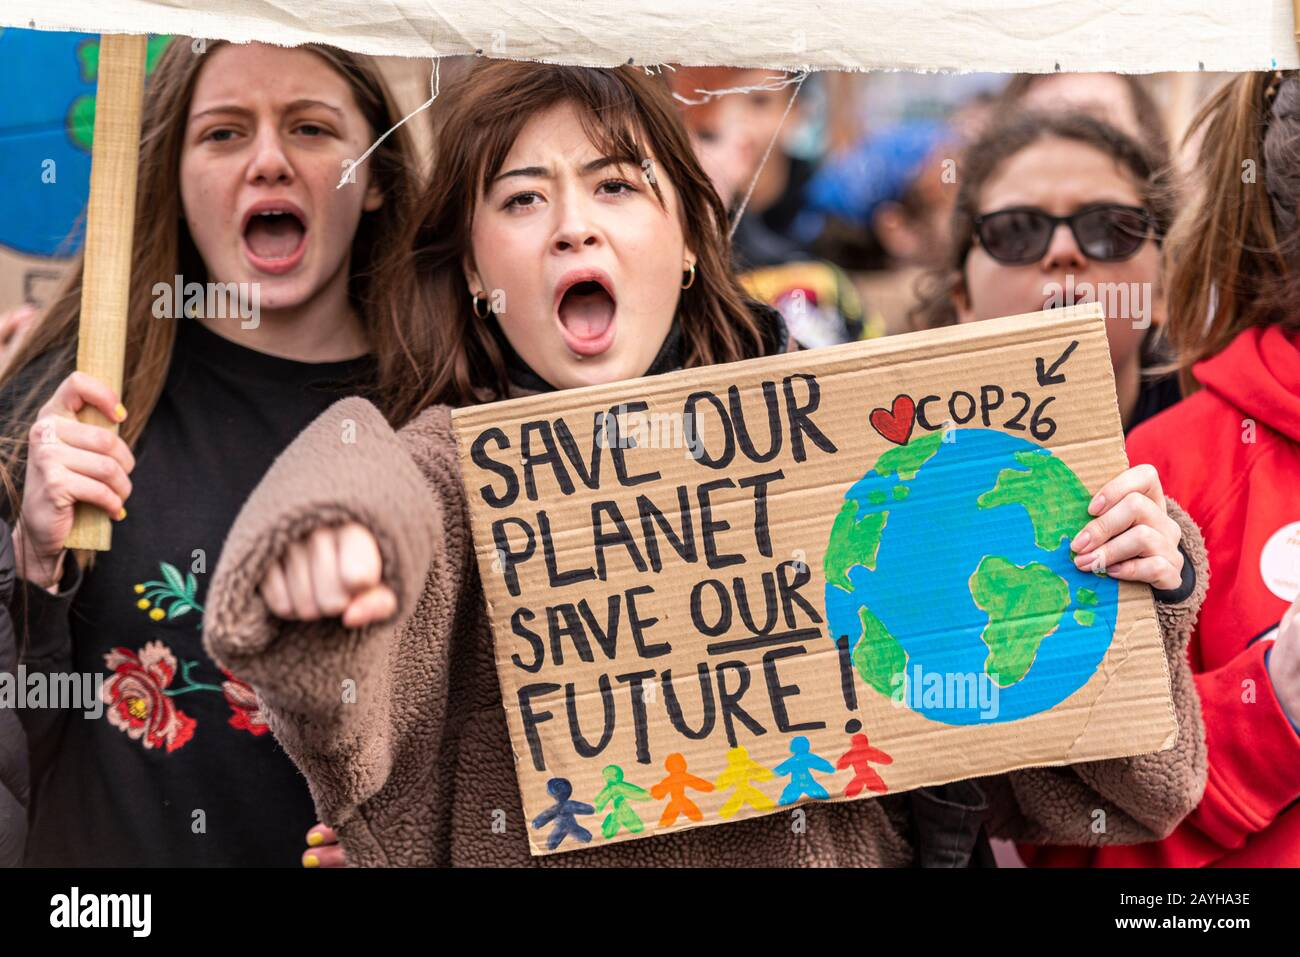 youngsters-at-a-youth-strike-4-climate-protest-in-parliament-square-london-uk-children-out-of-school-demonstrating-for-action-on-global-warming-2AYHA3E.jpg